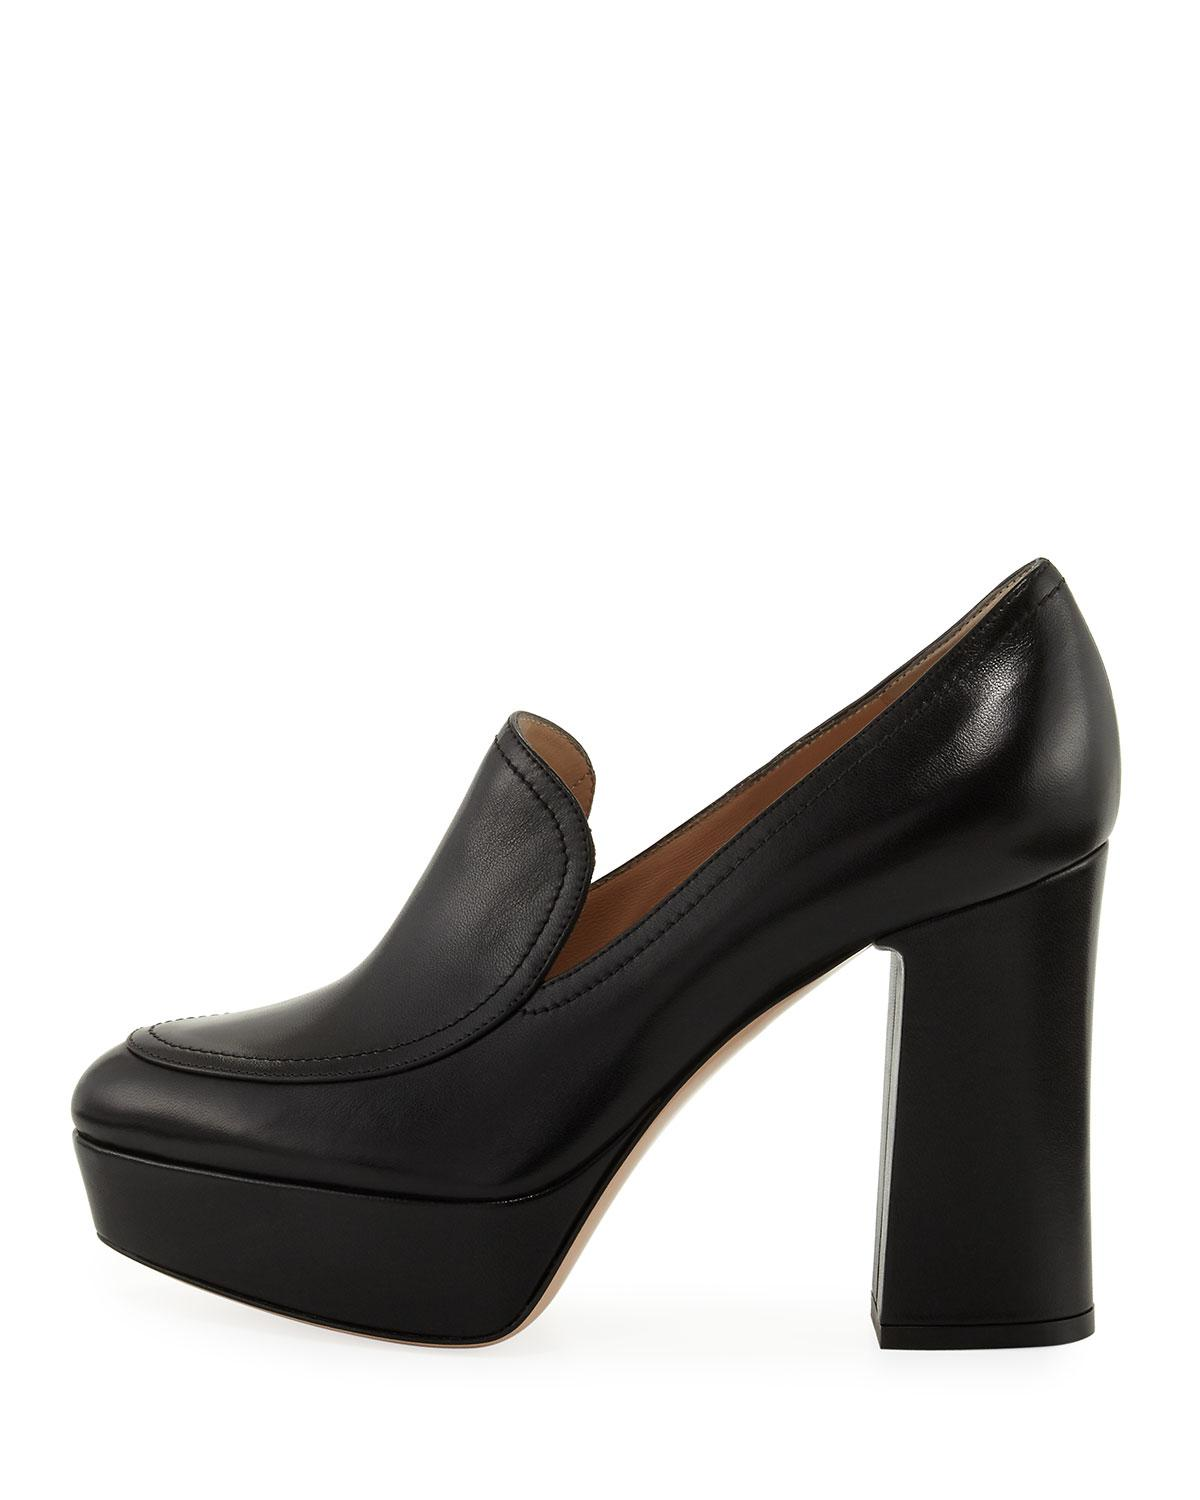 109823ed661e Lyst - Gianvito Rossi Platform Leather Loafer Pump in Black